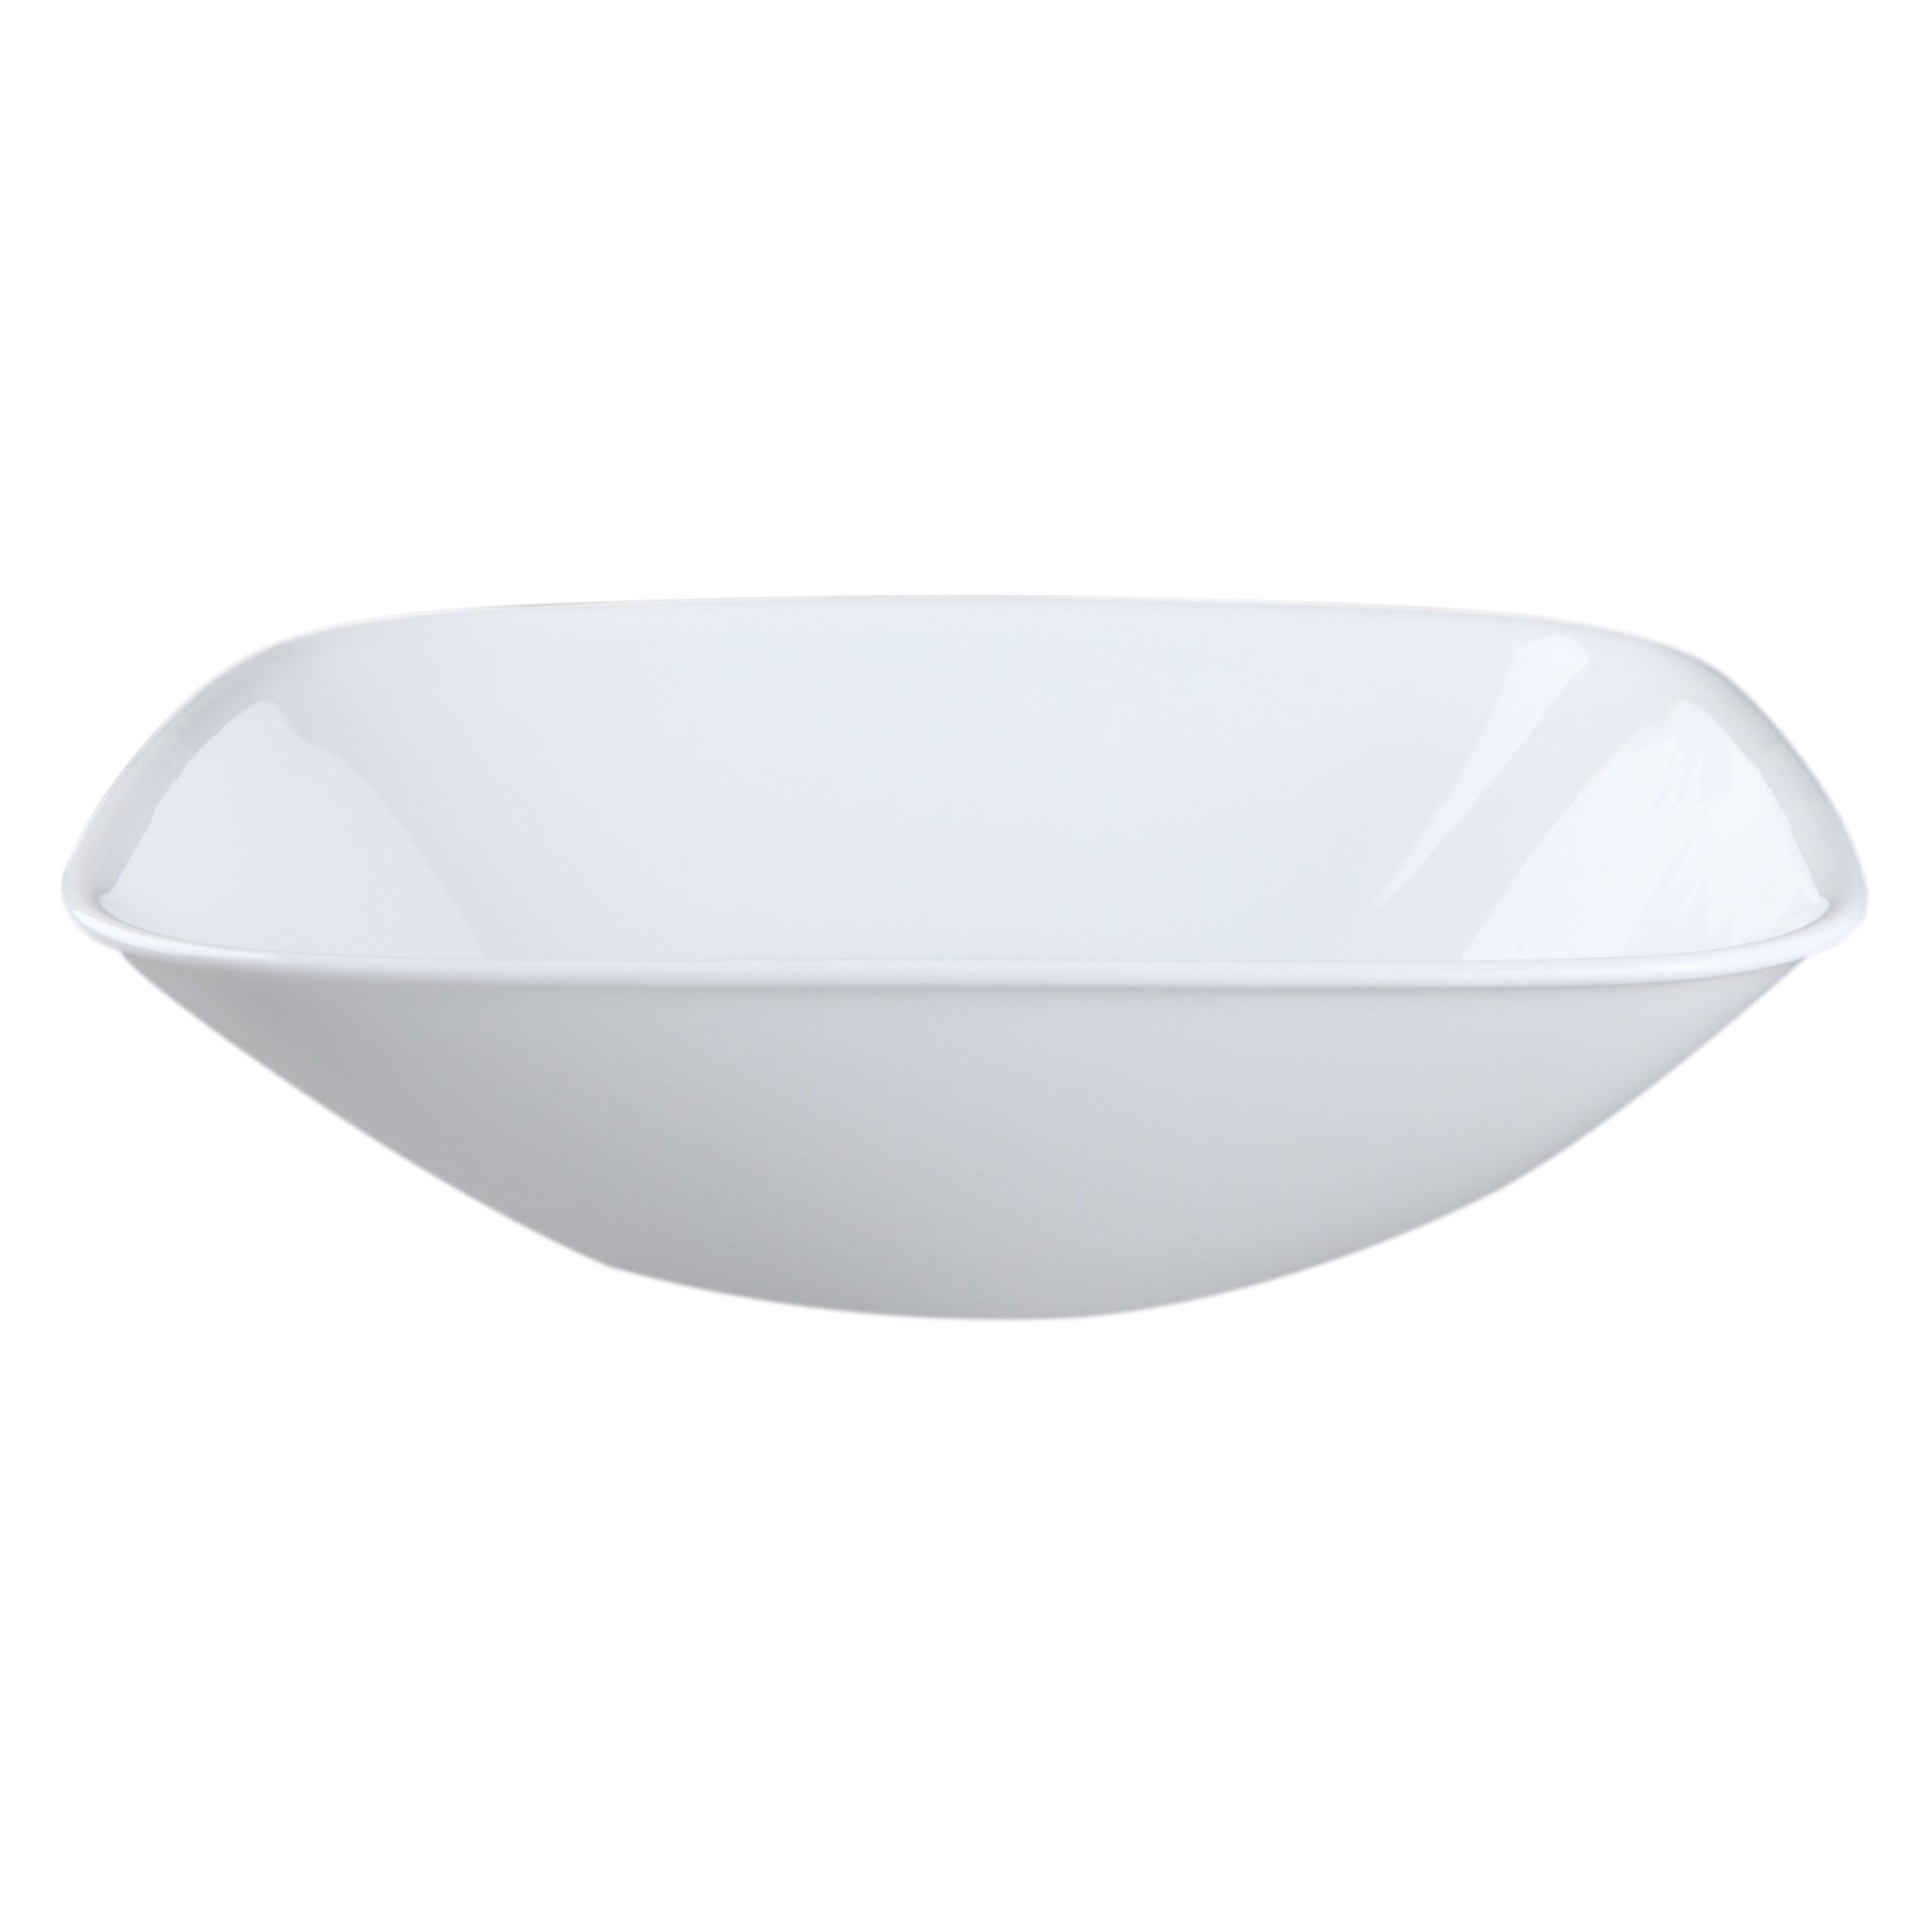 Corelle Square Pure White 1.4L Serving Bowl-1077746